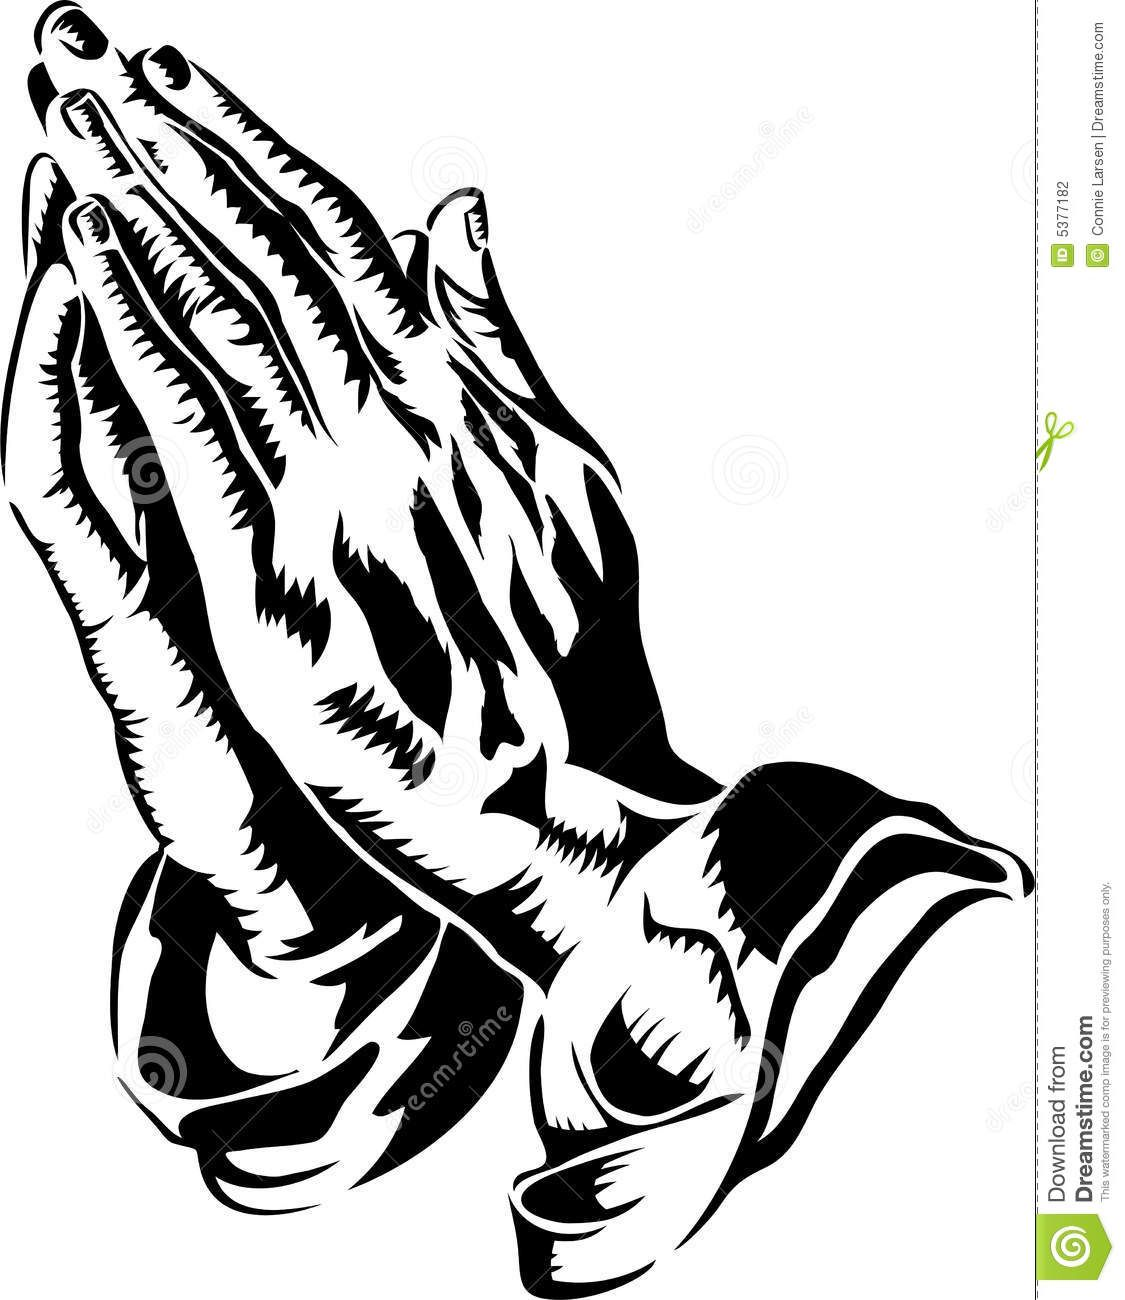 Displaying 18gt Images For Praying Hands Clipart Sketch Coloring Page